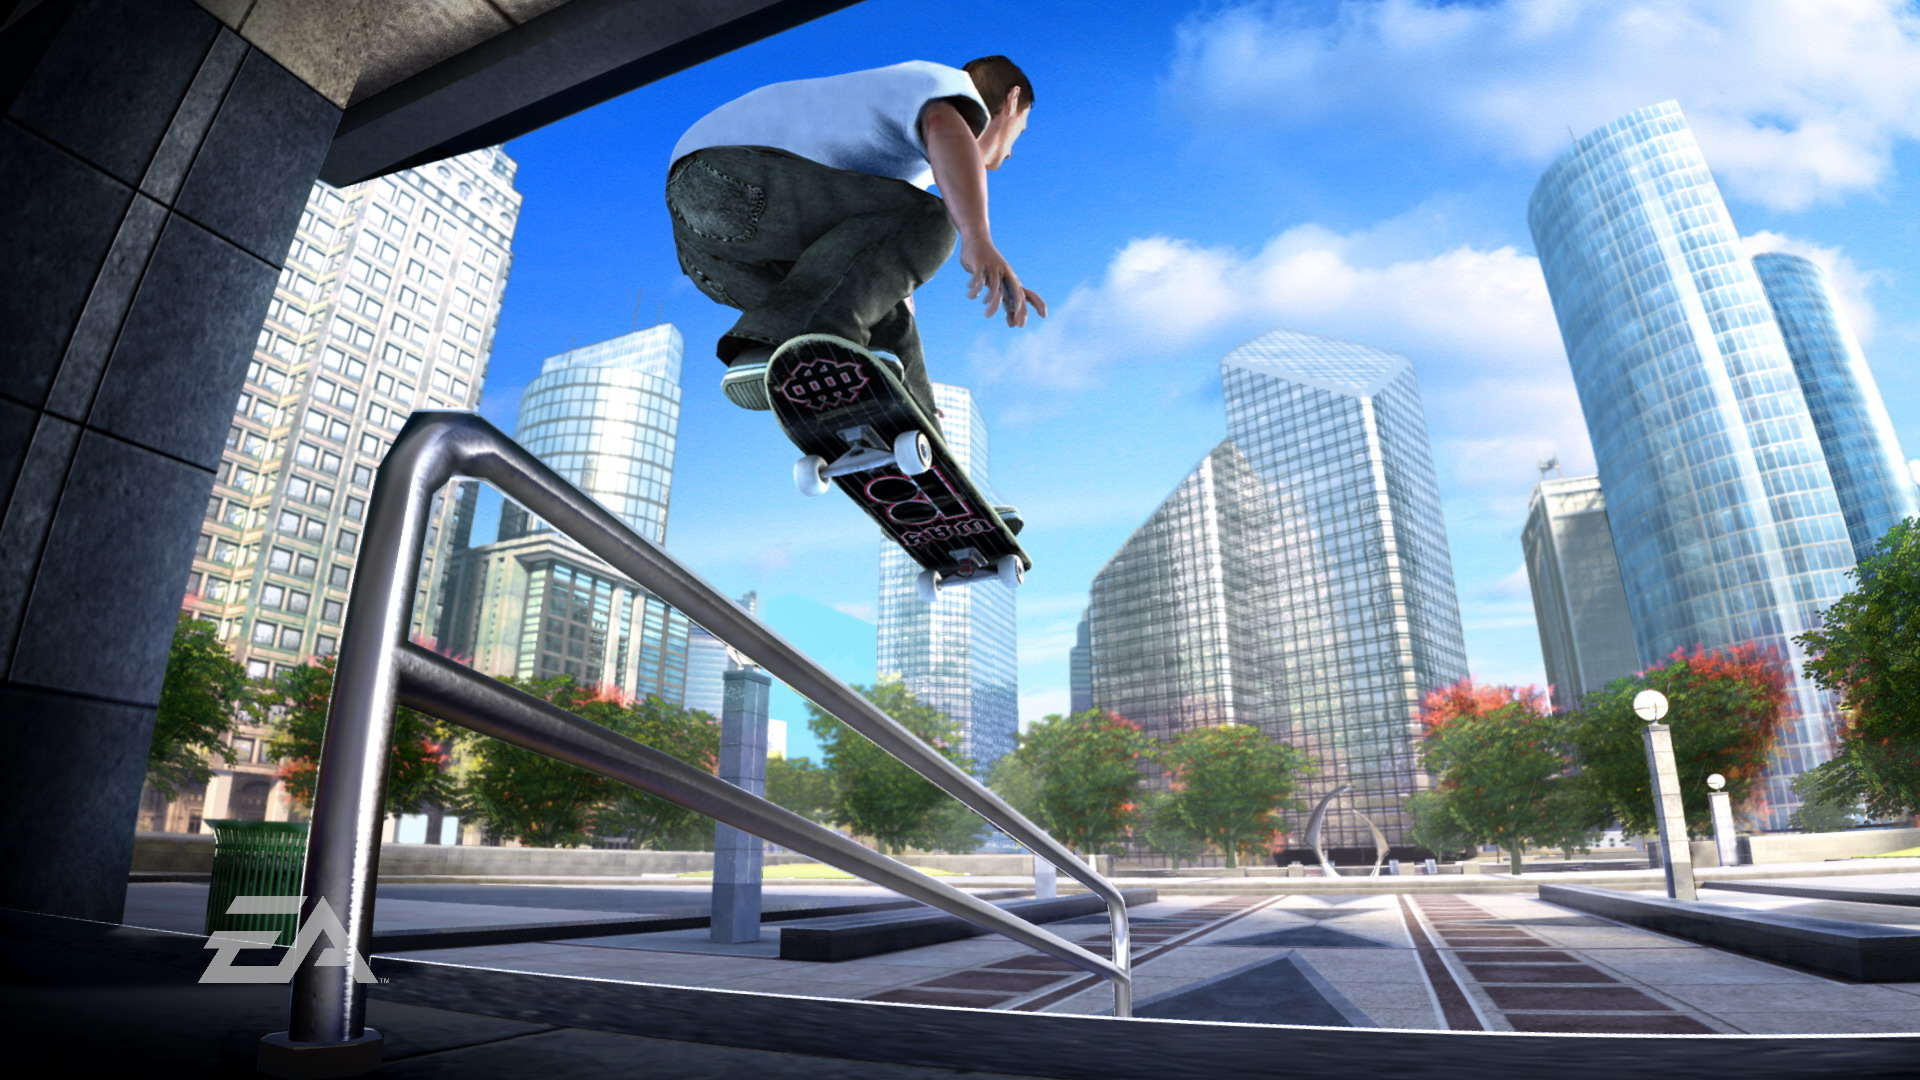 Skate 4 Could Be A Reality As Leaked Image Surfaces 1322072